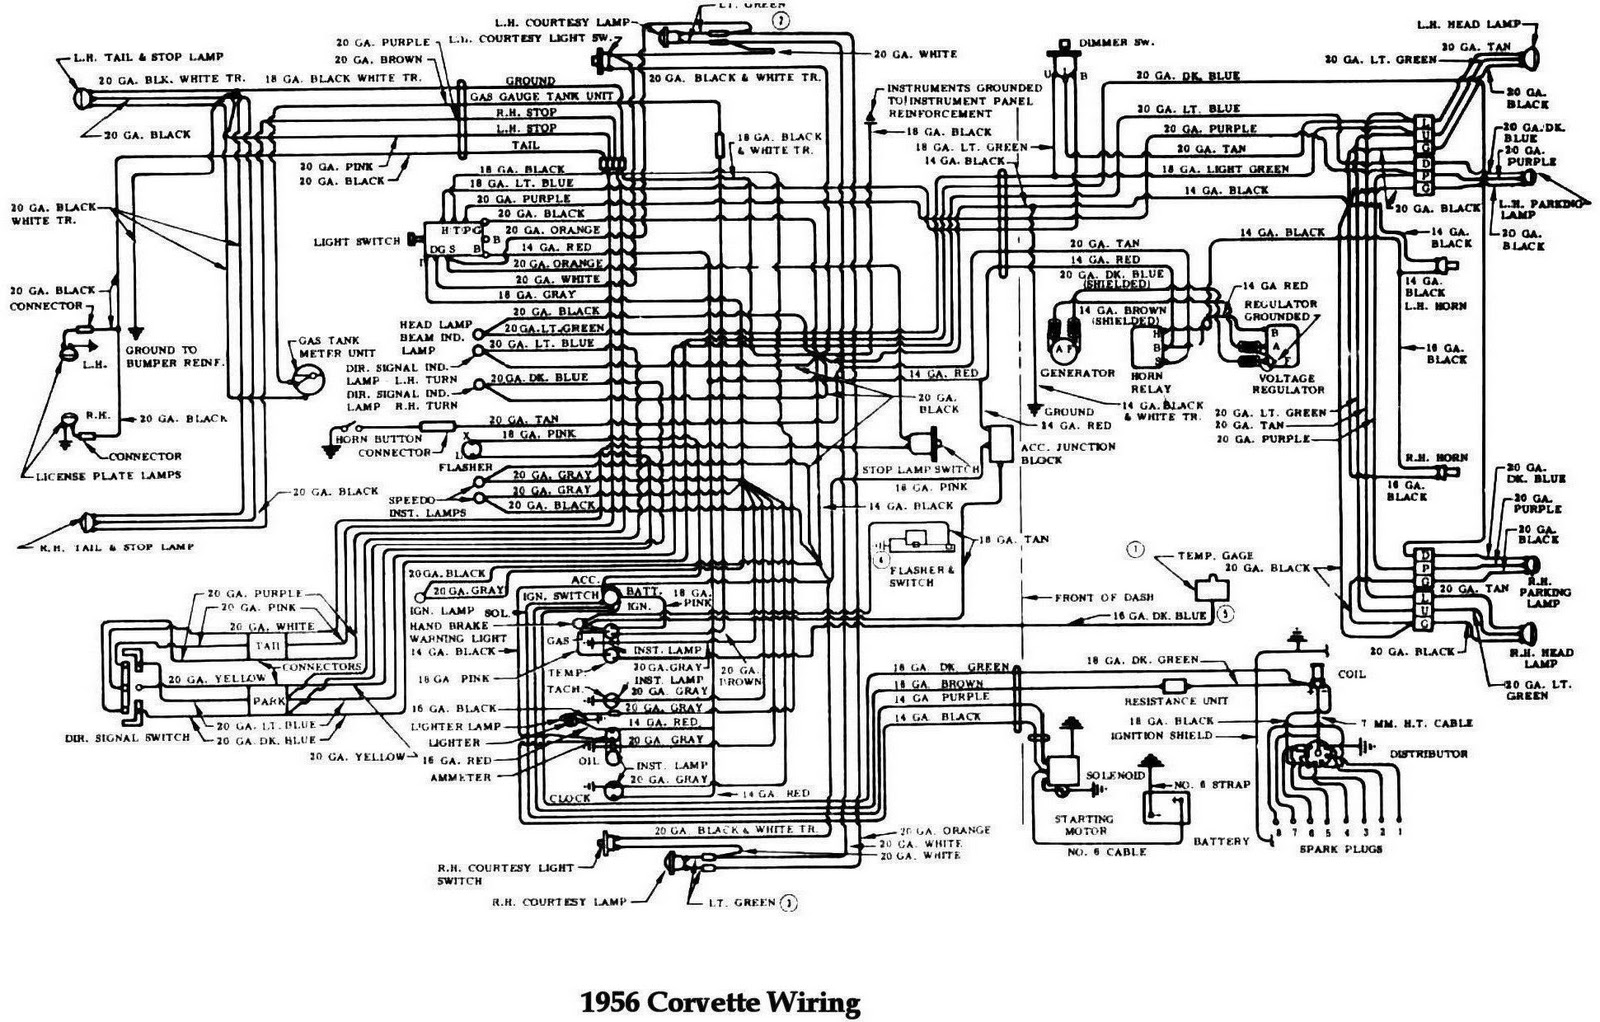 1956 chevrolet corvette wiring diagram